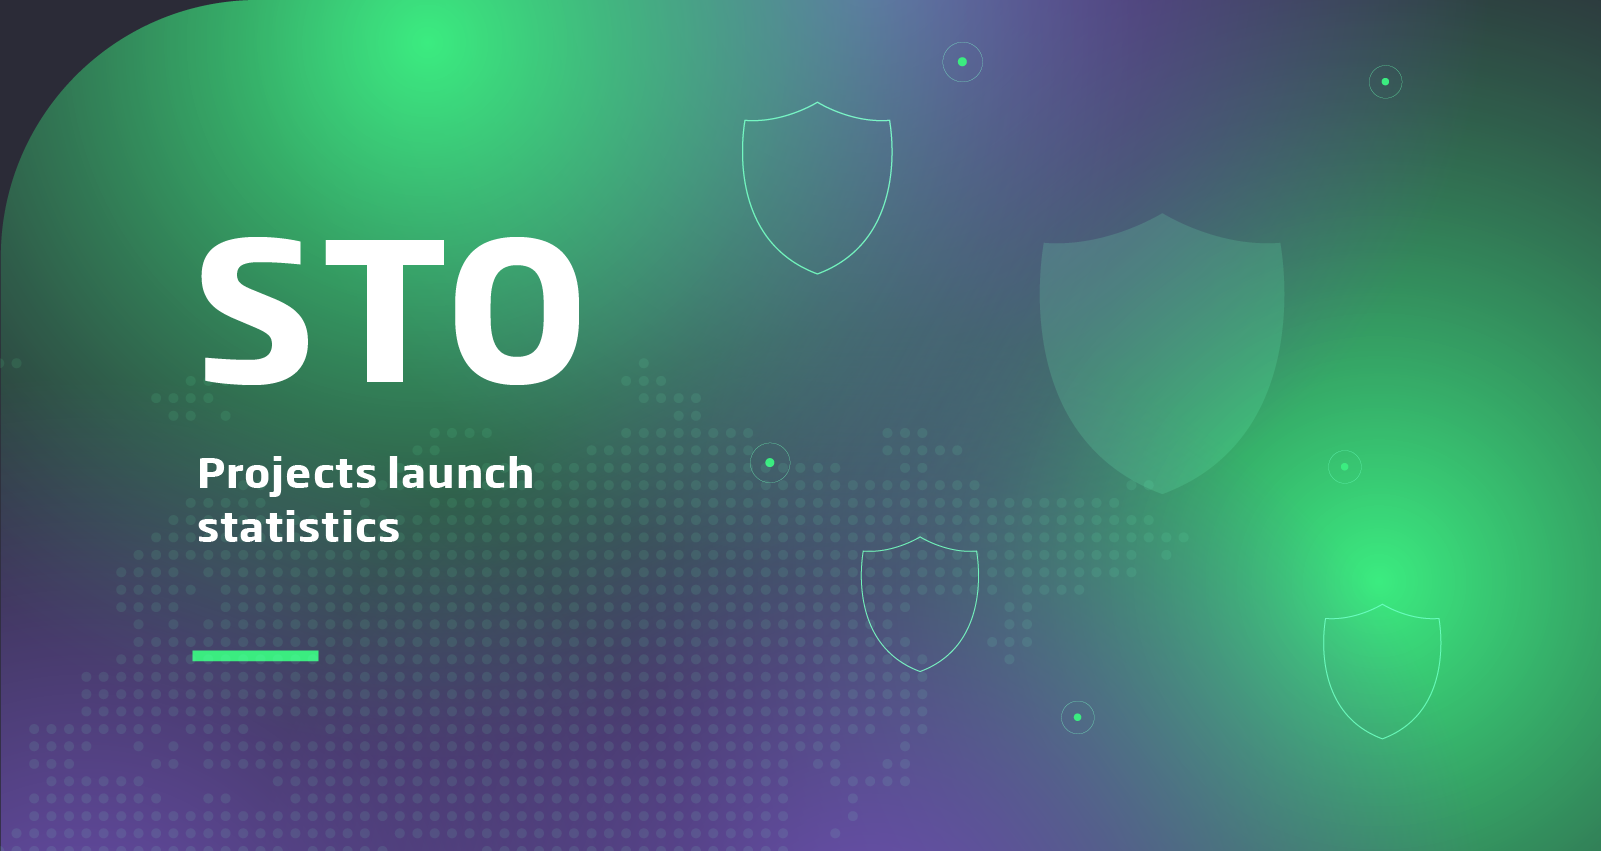 We've Seen What Happened After The ICO And IEO, But What About The STO?